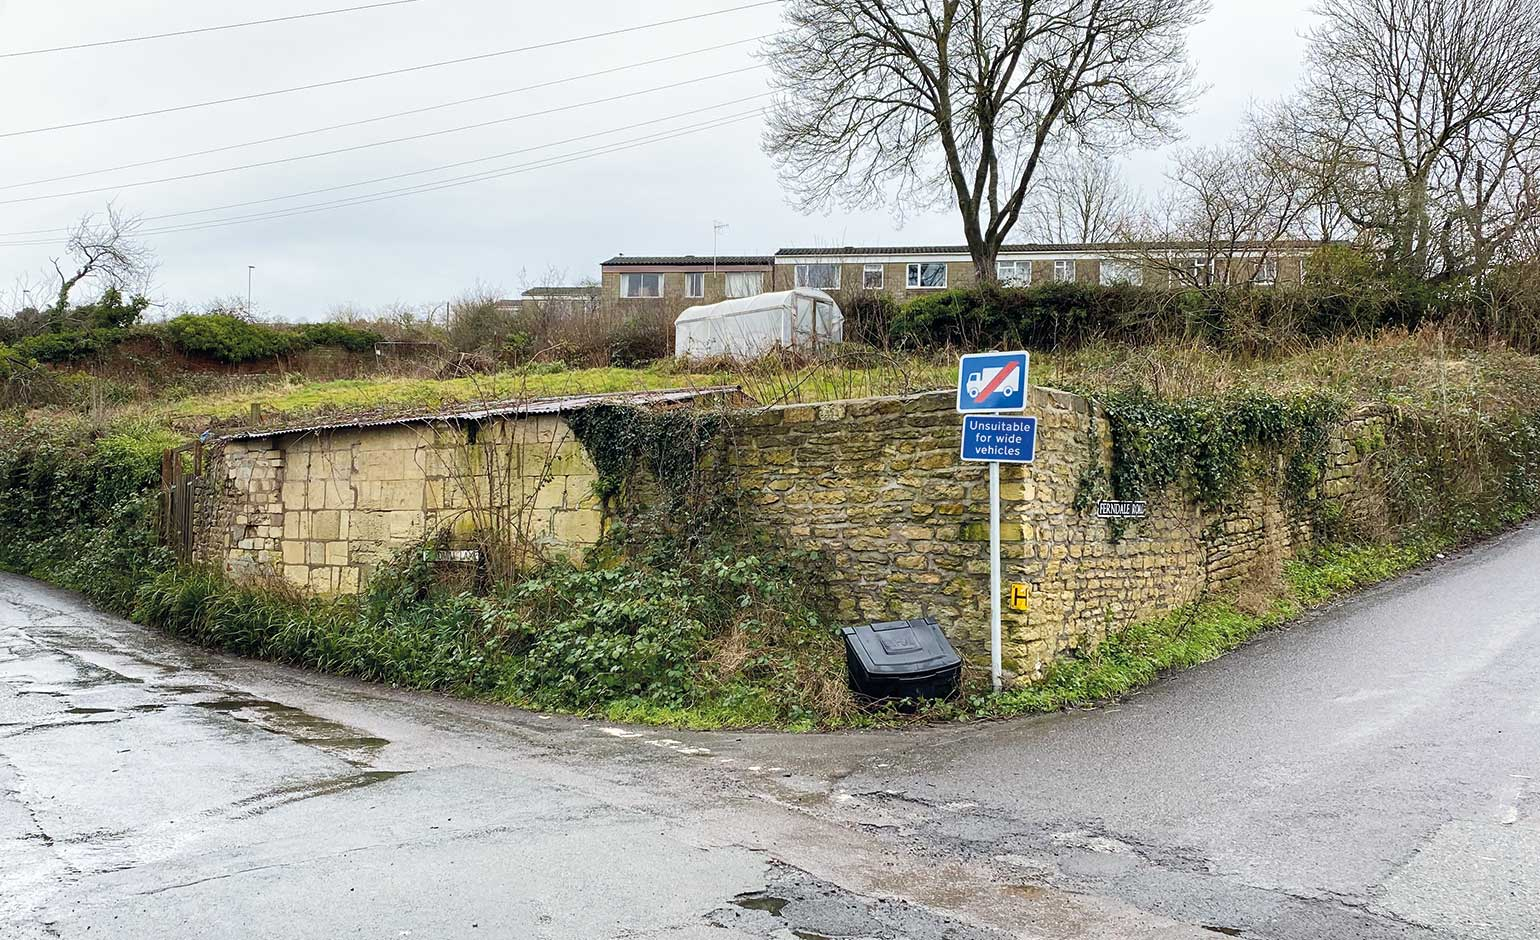 Plans submitted to build 18 homes on green belt land on the outskirts of Bath